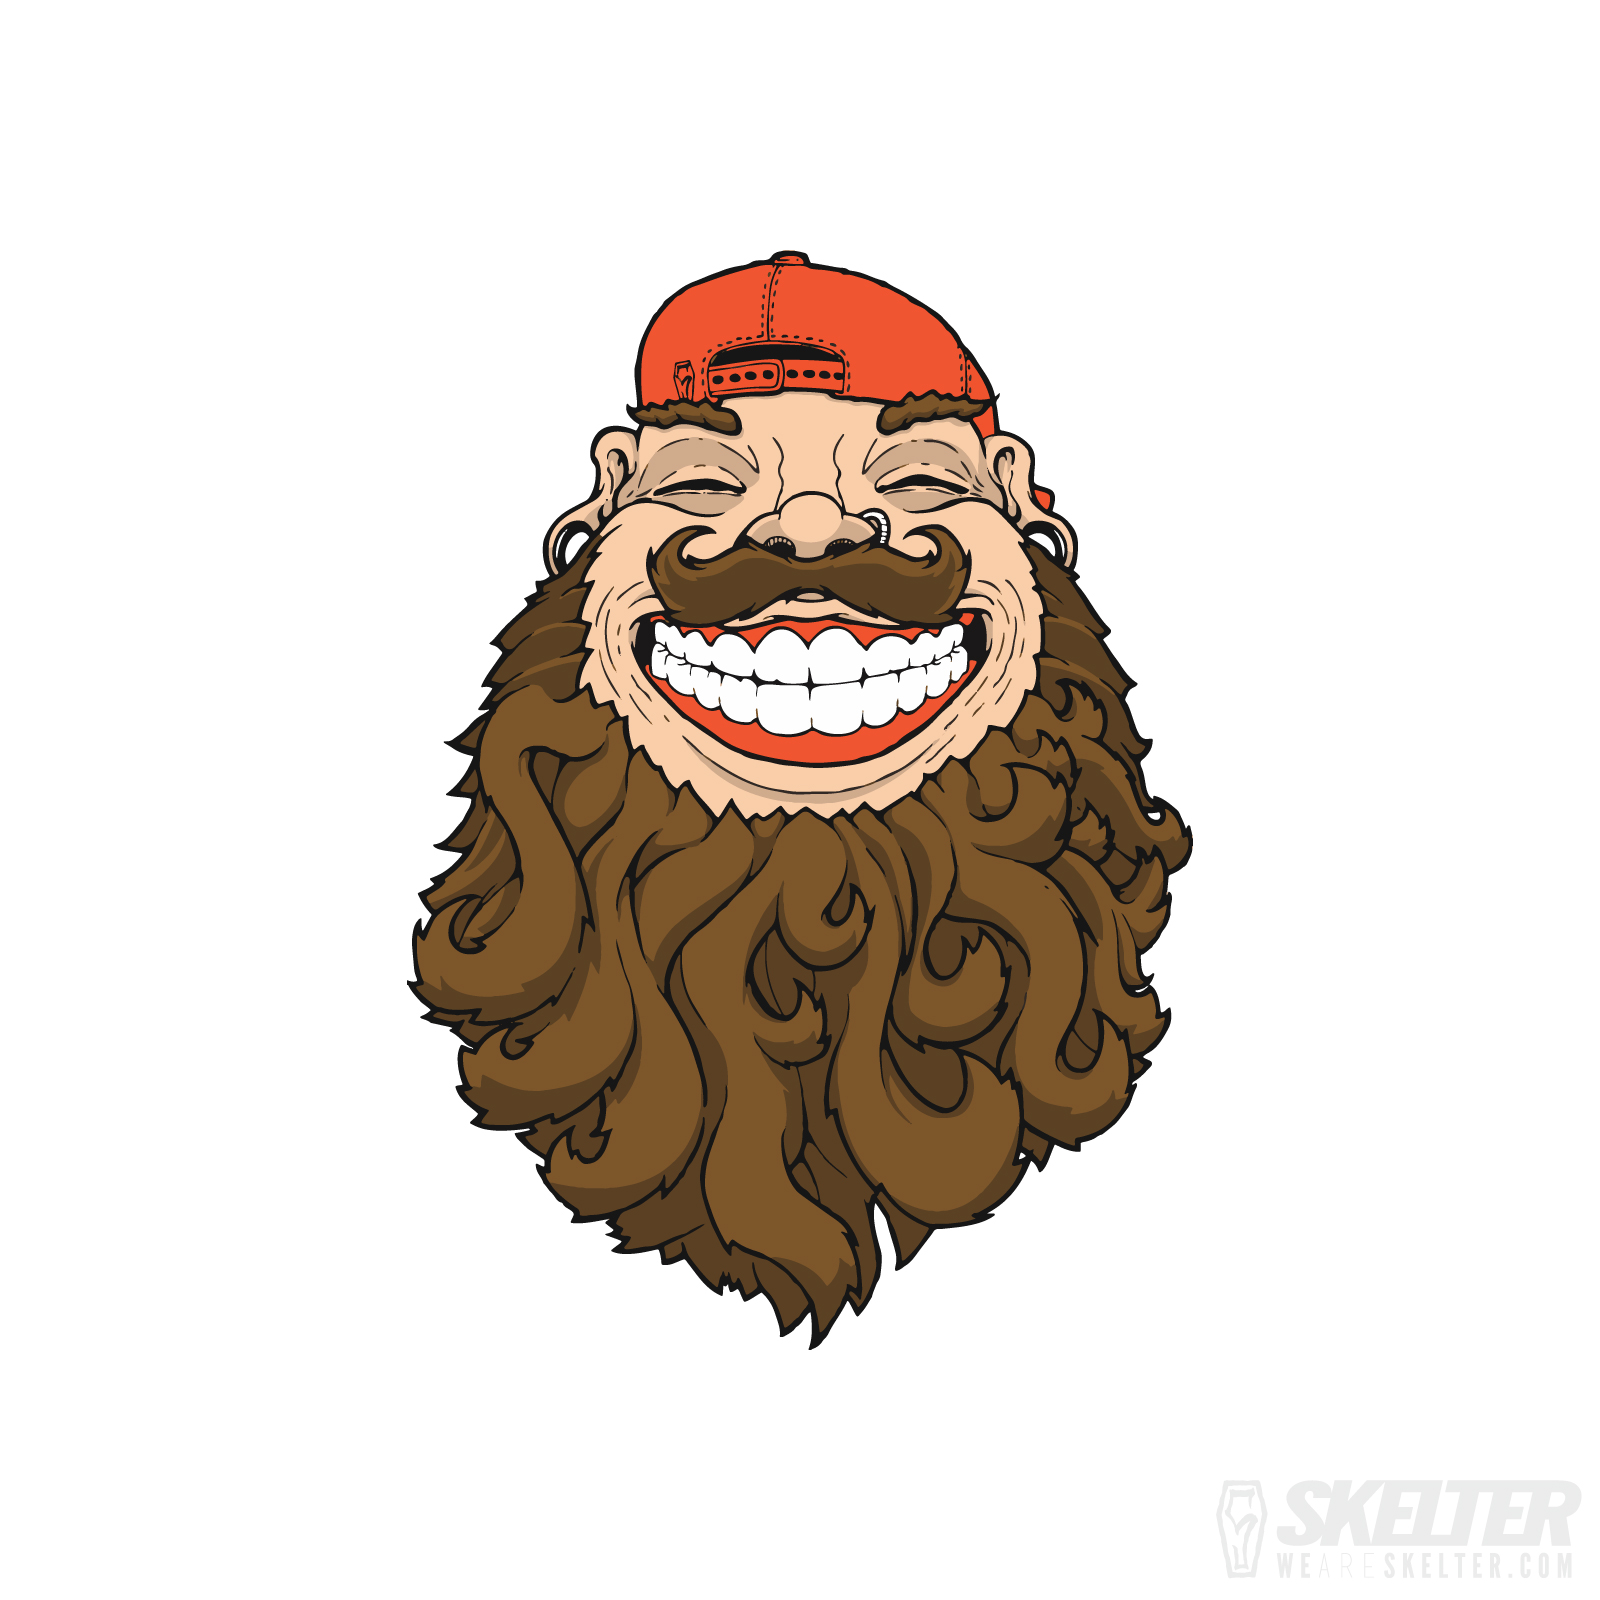 skelter-beardfear-design